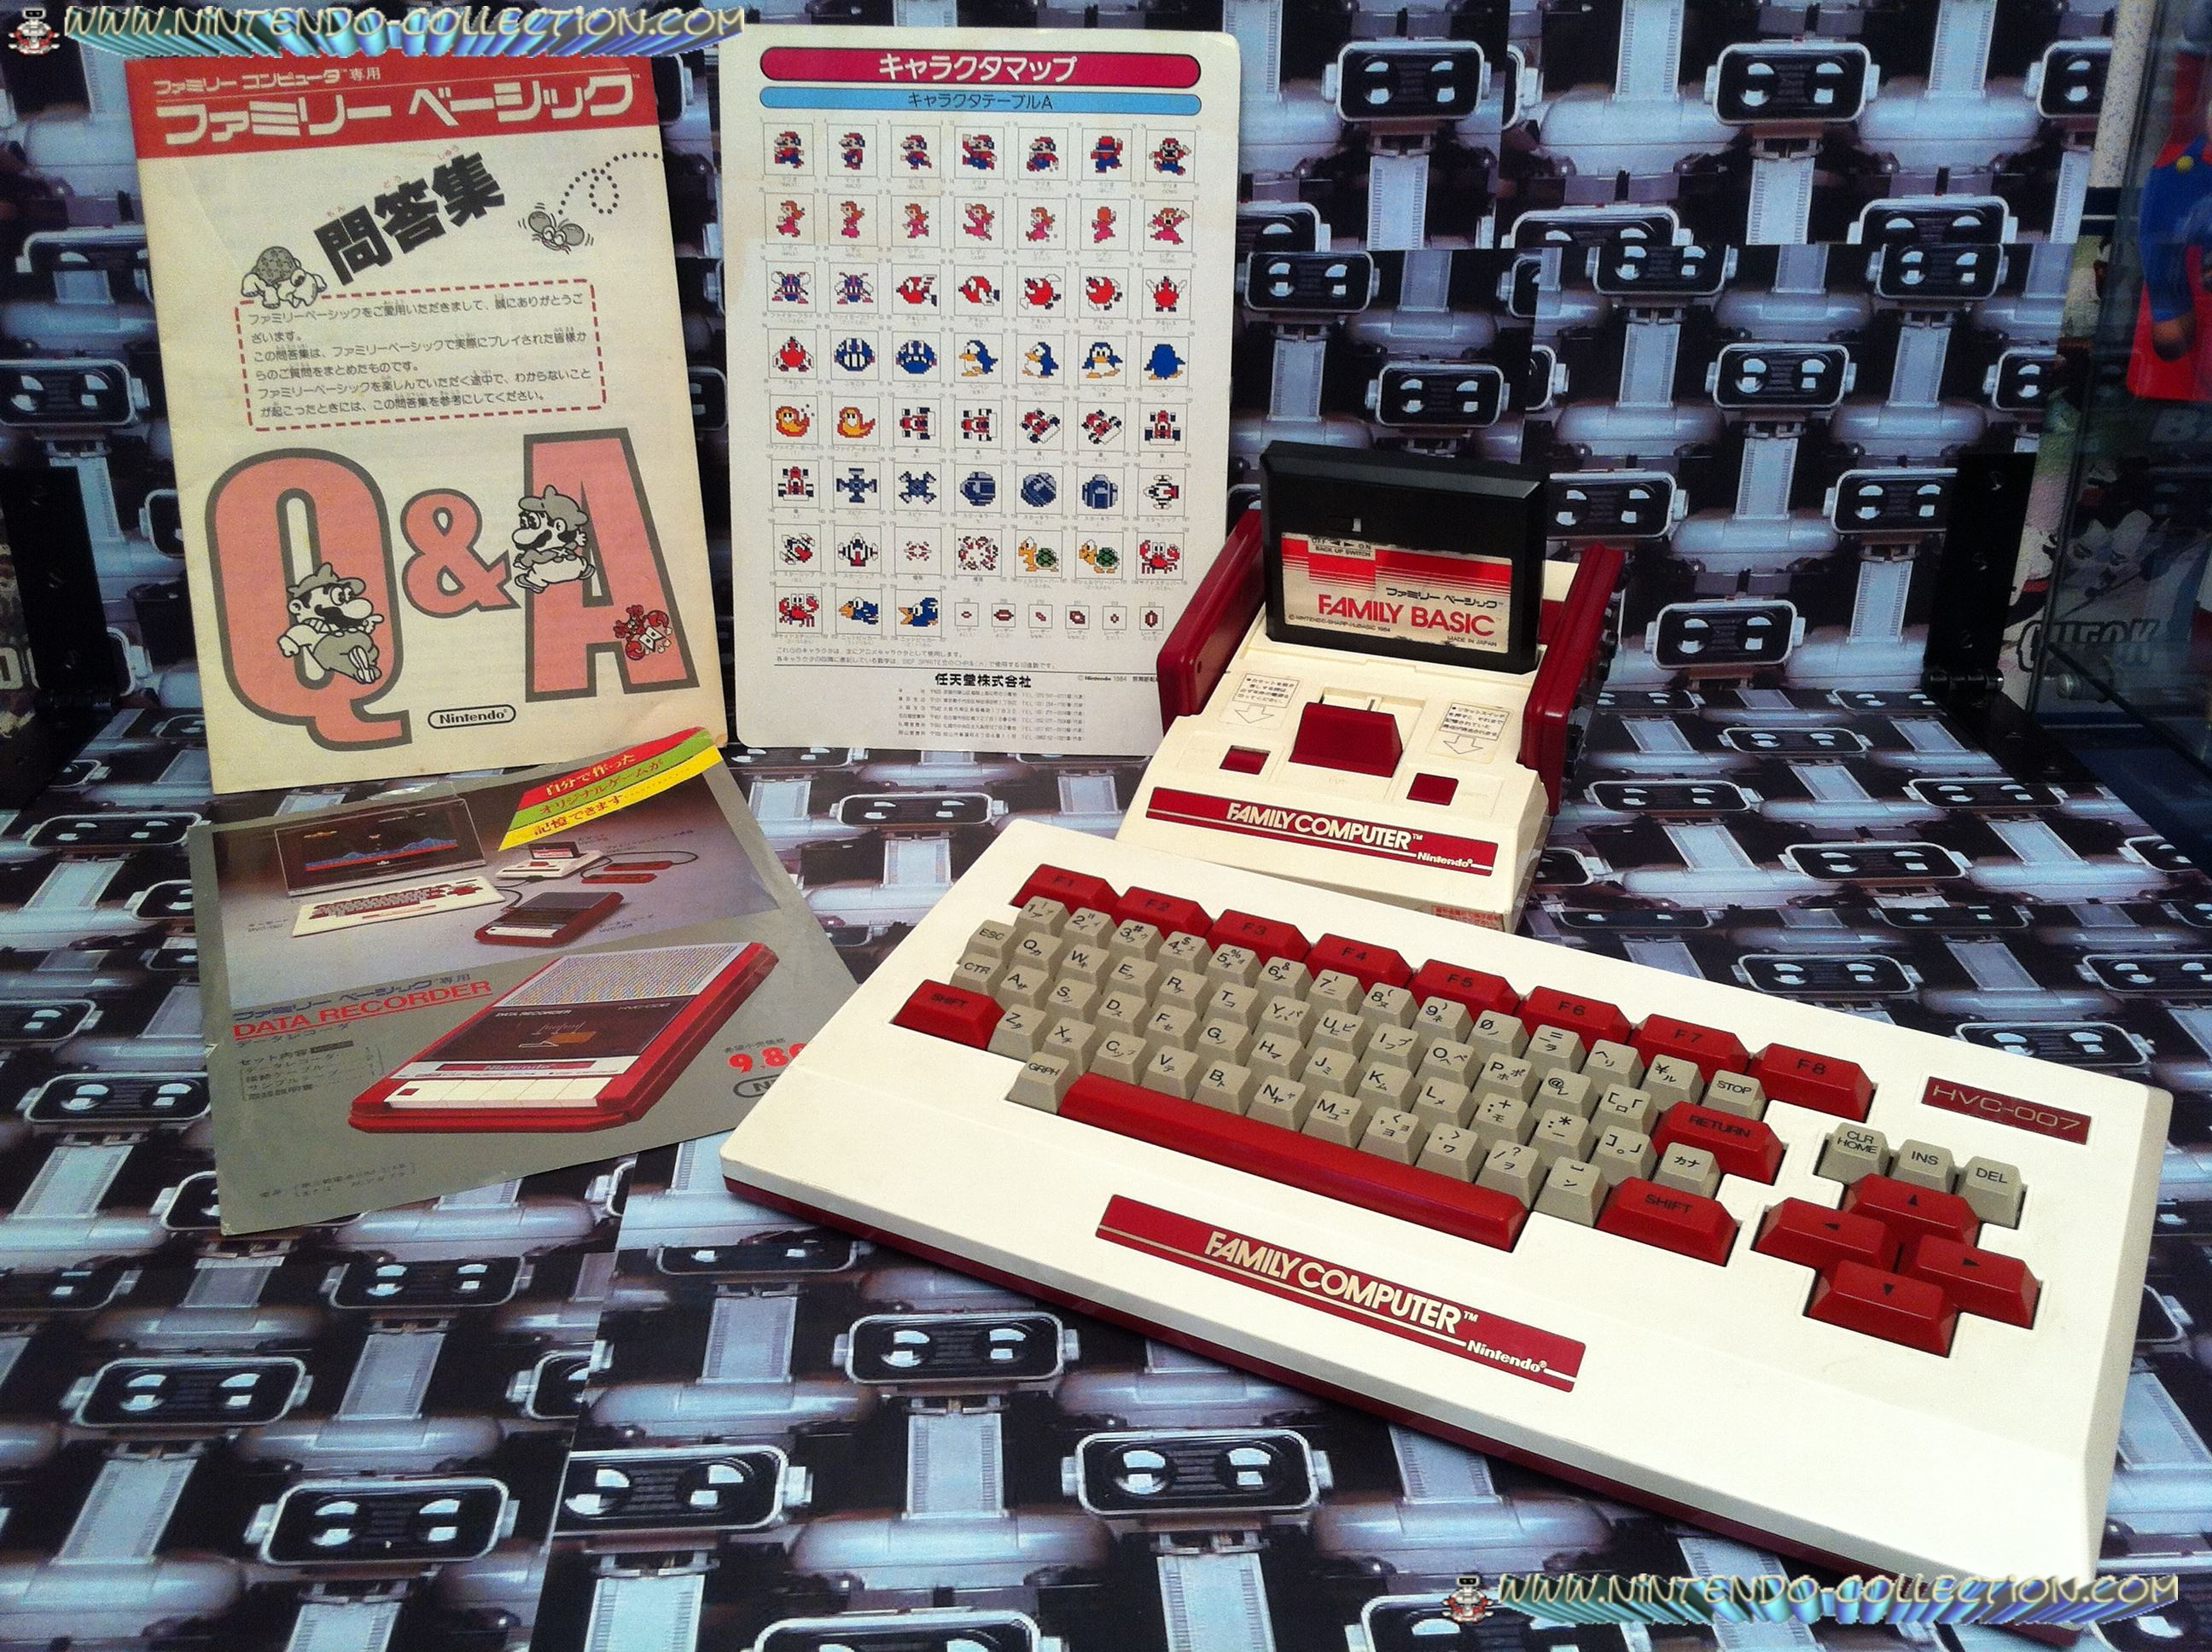 www.nintendo-collection.com - Famicom + Family Basic  + Clavier